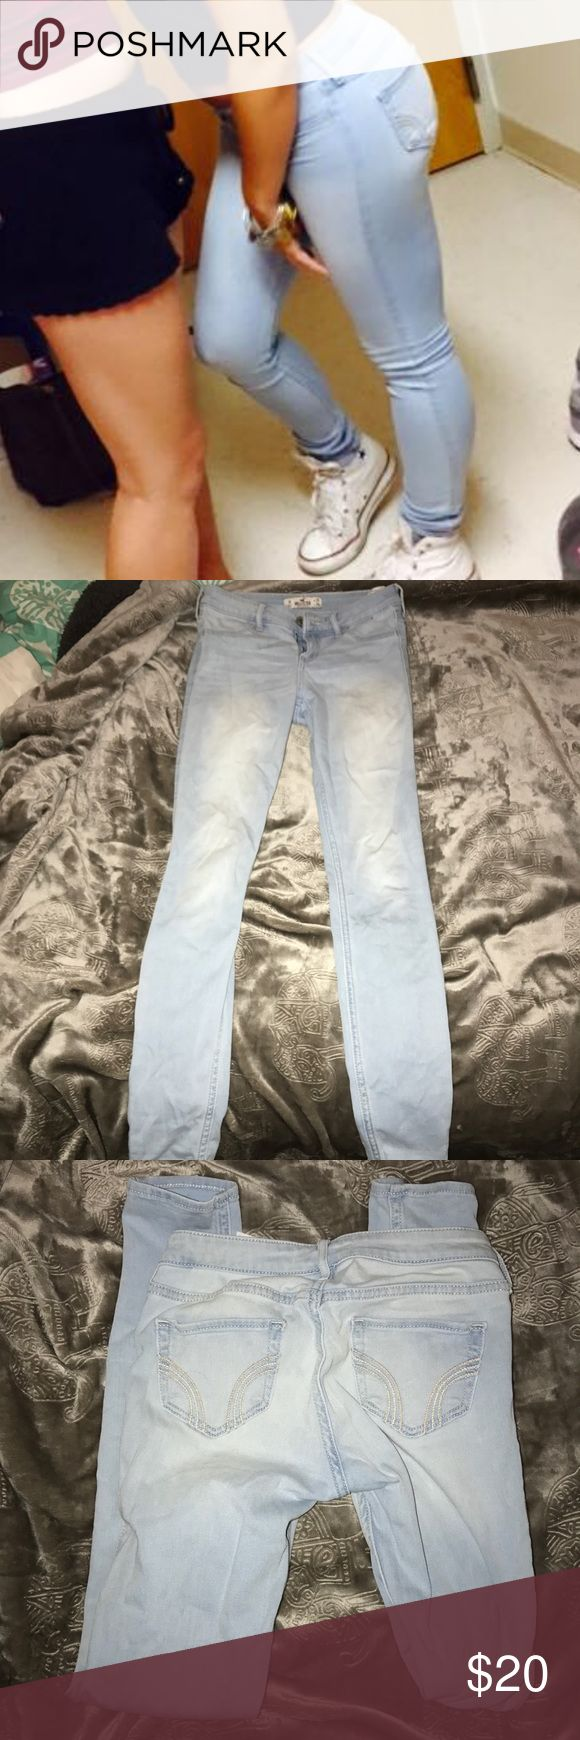 LIGHT WASH SKINNY JEANS Super cute light wash jeans from Abercrombie. These jeans are great and stretchy & comfortable. Worn many time but still in great condition. Highly recommend these jeans, work with anything! Abercrombie & Fitch Jeans Skinny